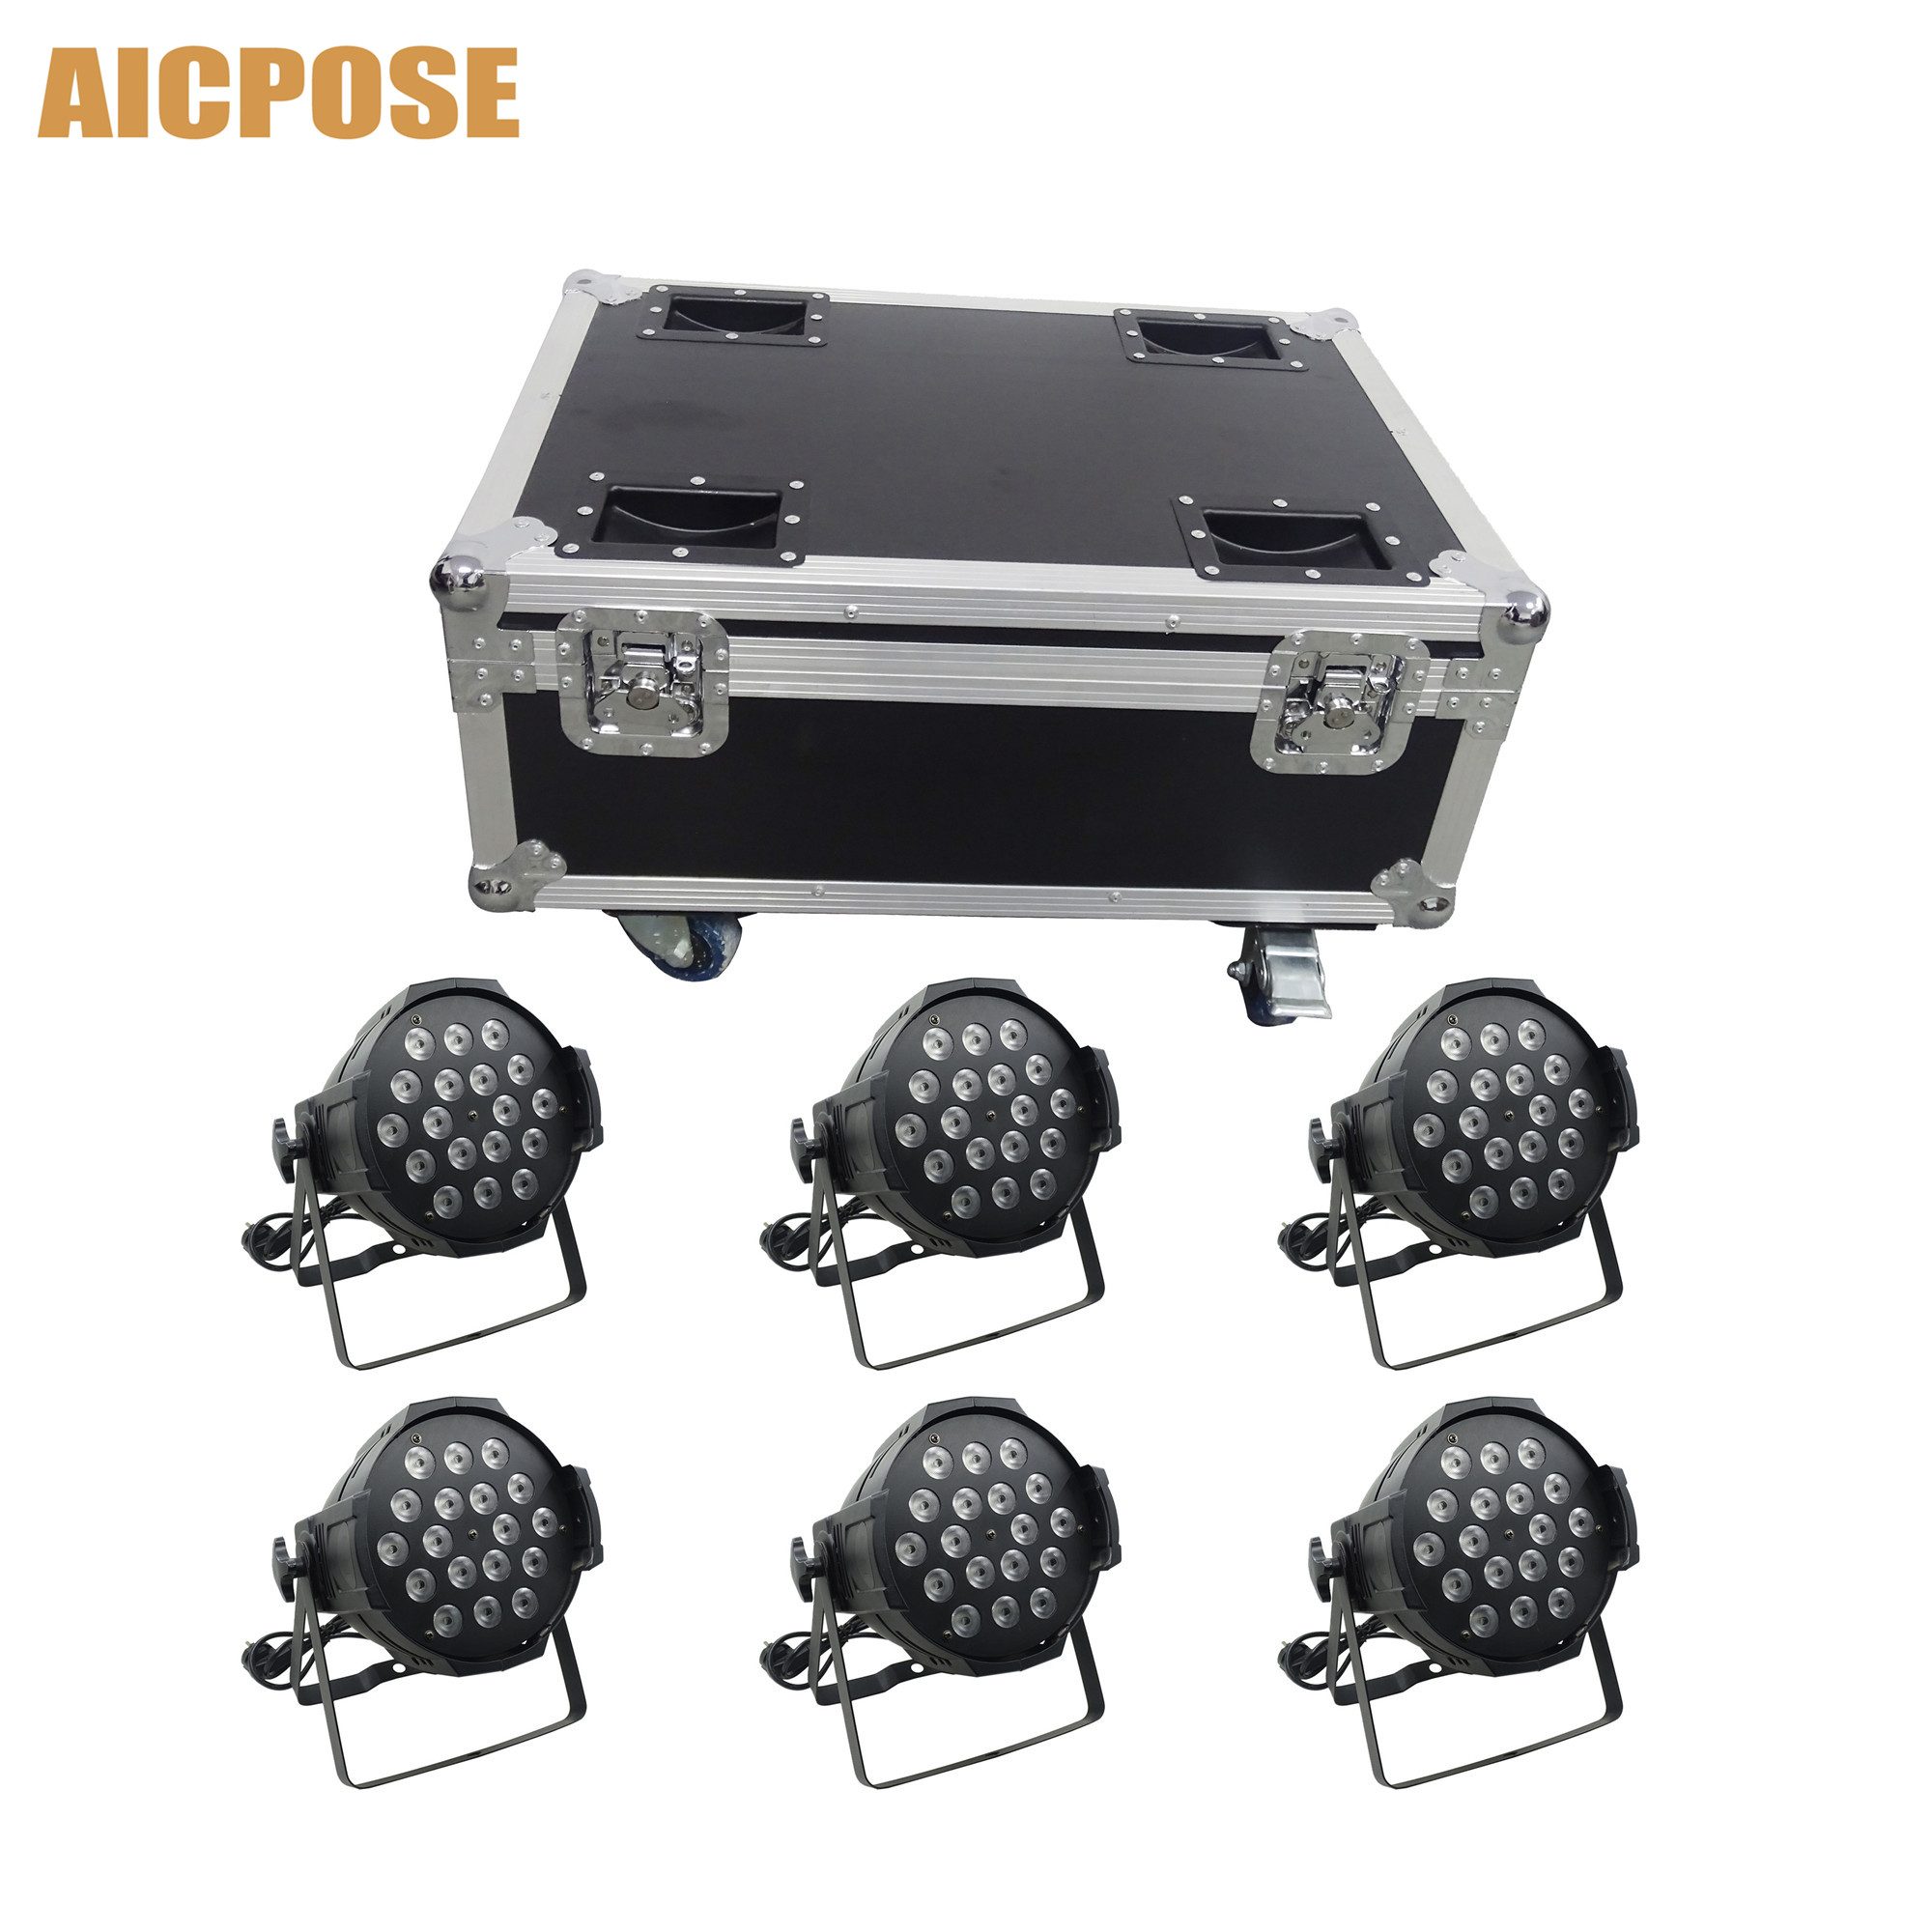 6pcs 18*12w Power in and out LED Par Lights 18x12W RGBW 4in1 Par 64 led spotlight dj projector stage light With flight case6pcs 18*12w Power in and out LED Par Lights 18x12W RGBW 4in1 Par 64 led spotlight dj projector stage light With flight case